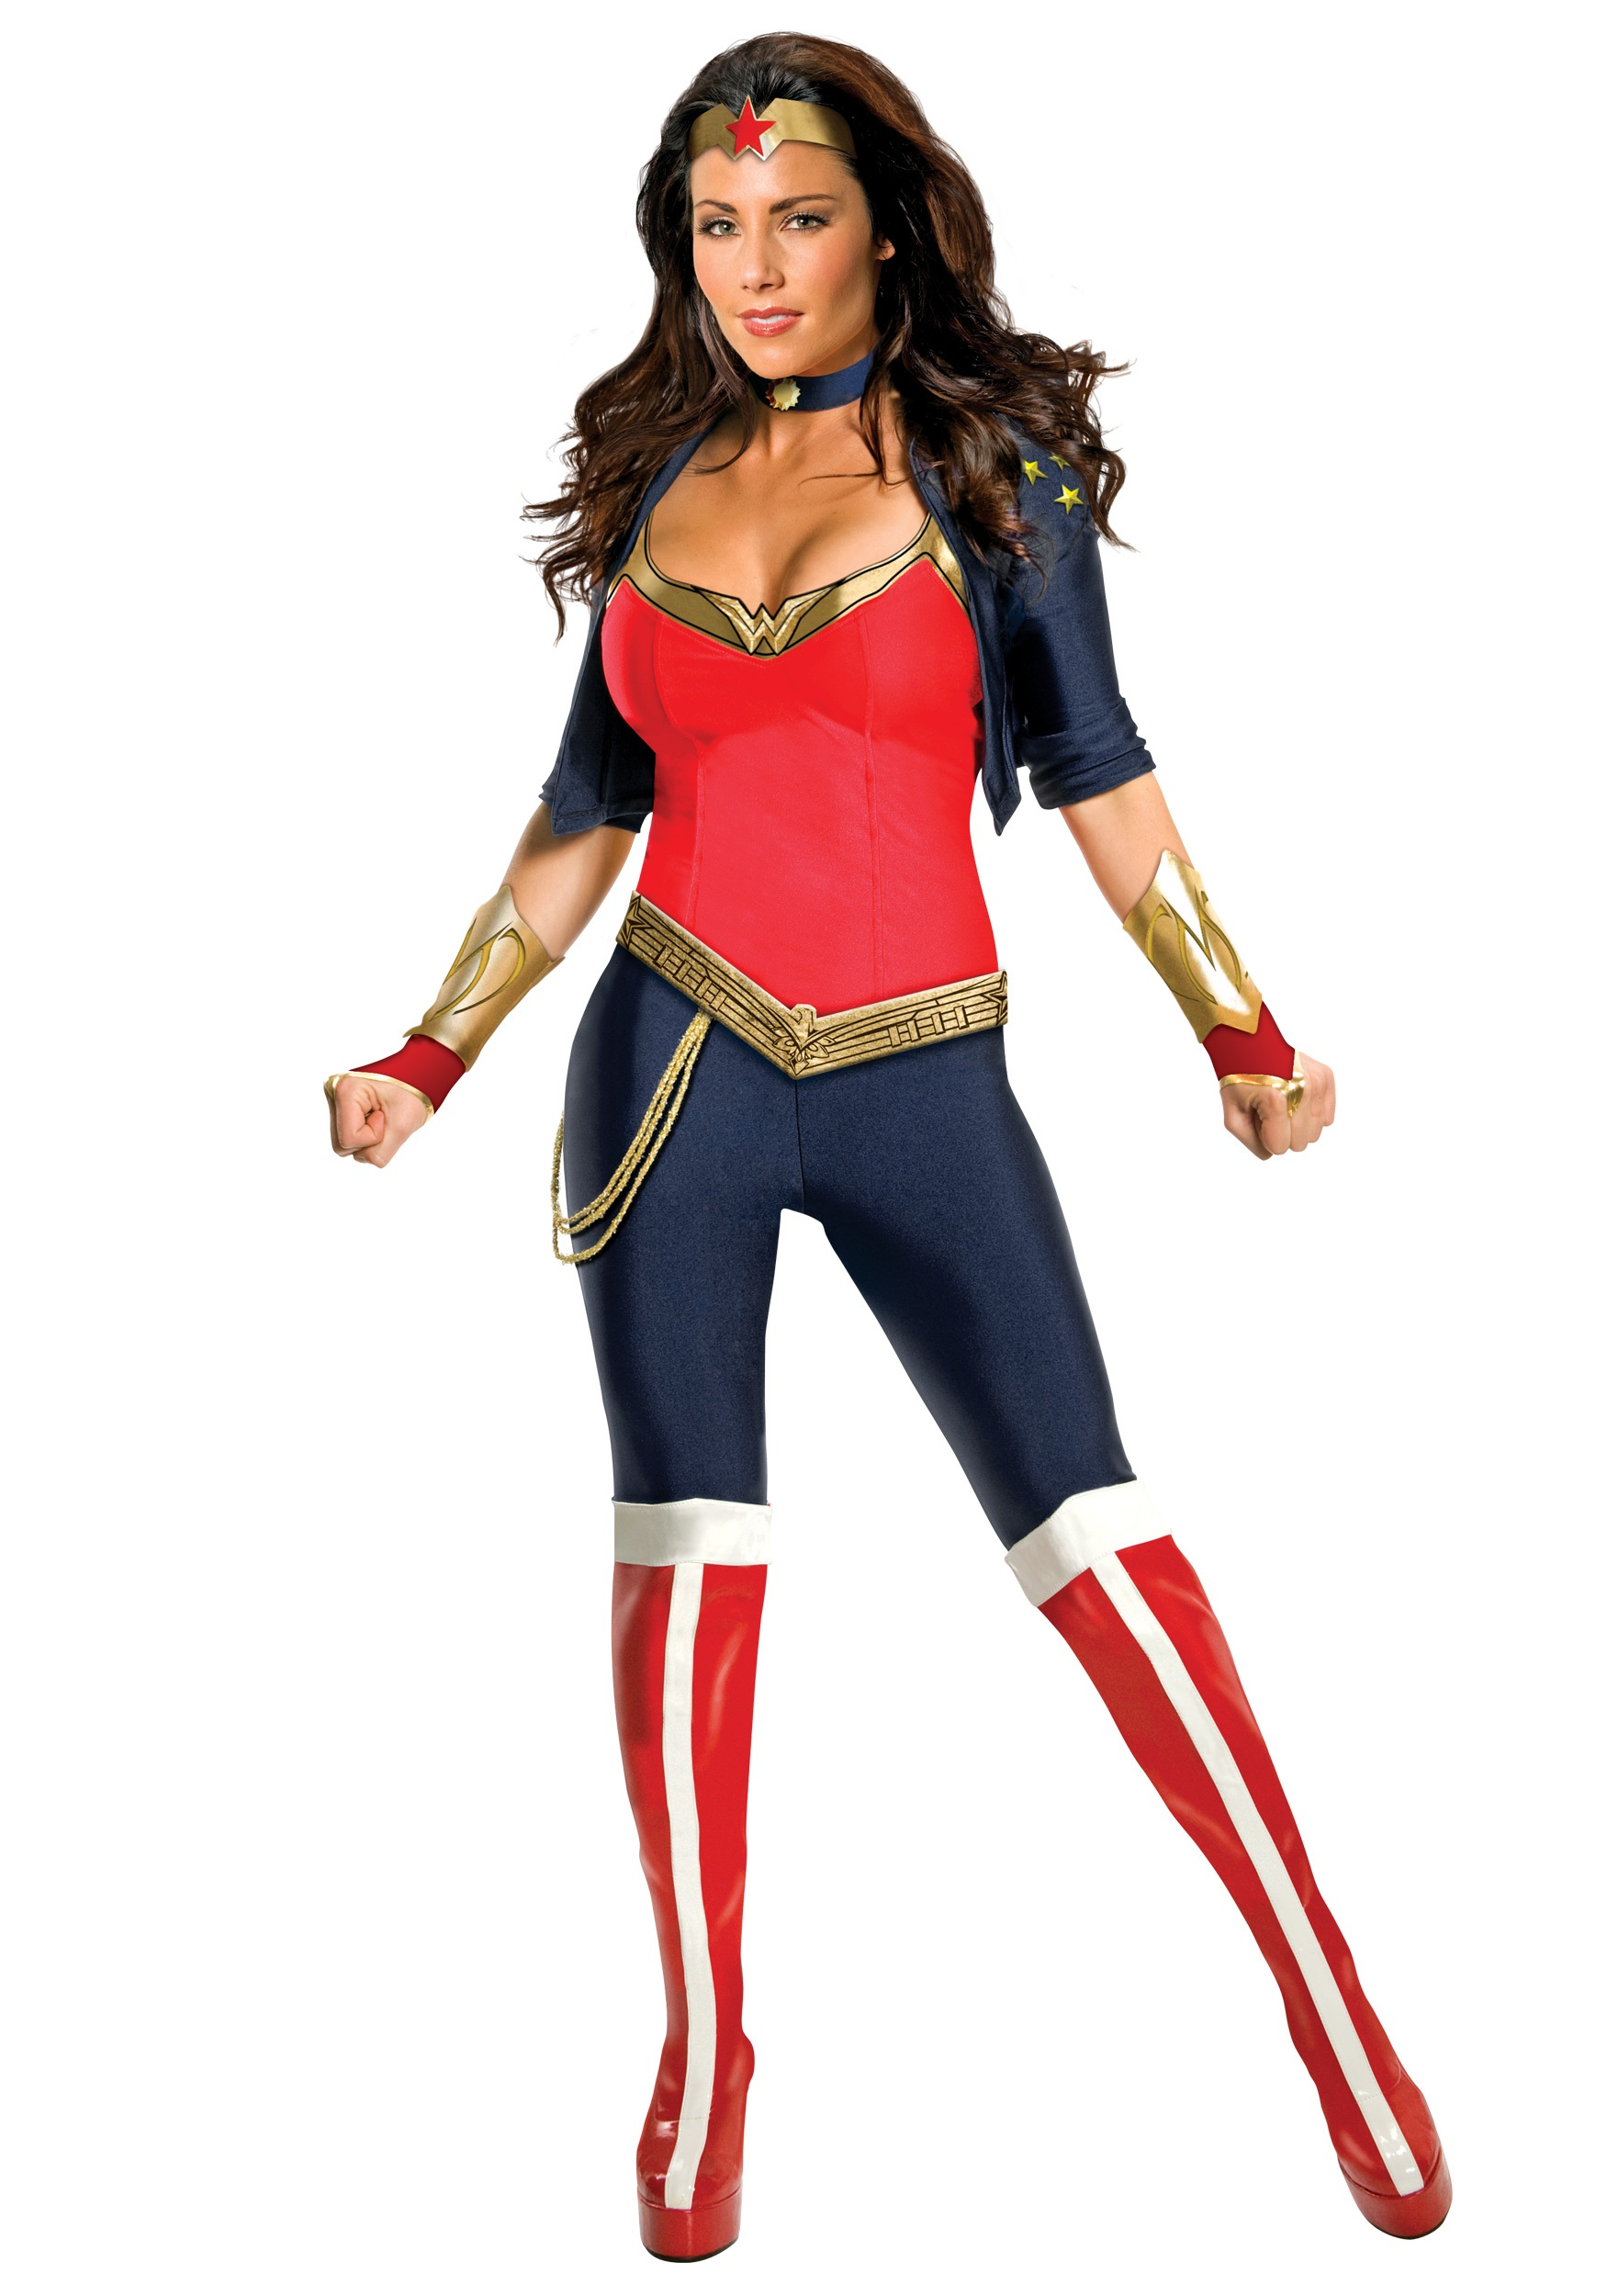 Wonder Woman costume dress, cape, fabric headband, wristlets, belt, and Dc Comics Wonder Woman Warrior Corset and Skirt Costume Set. by Underboss. $ $ 64 95 Prime. FREE Shipping on eligible orders. Some sizes are Prime eligible. out of 5 stars Product Features Foil Wonder Woman logo.